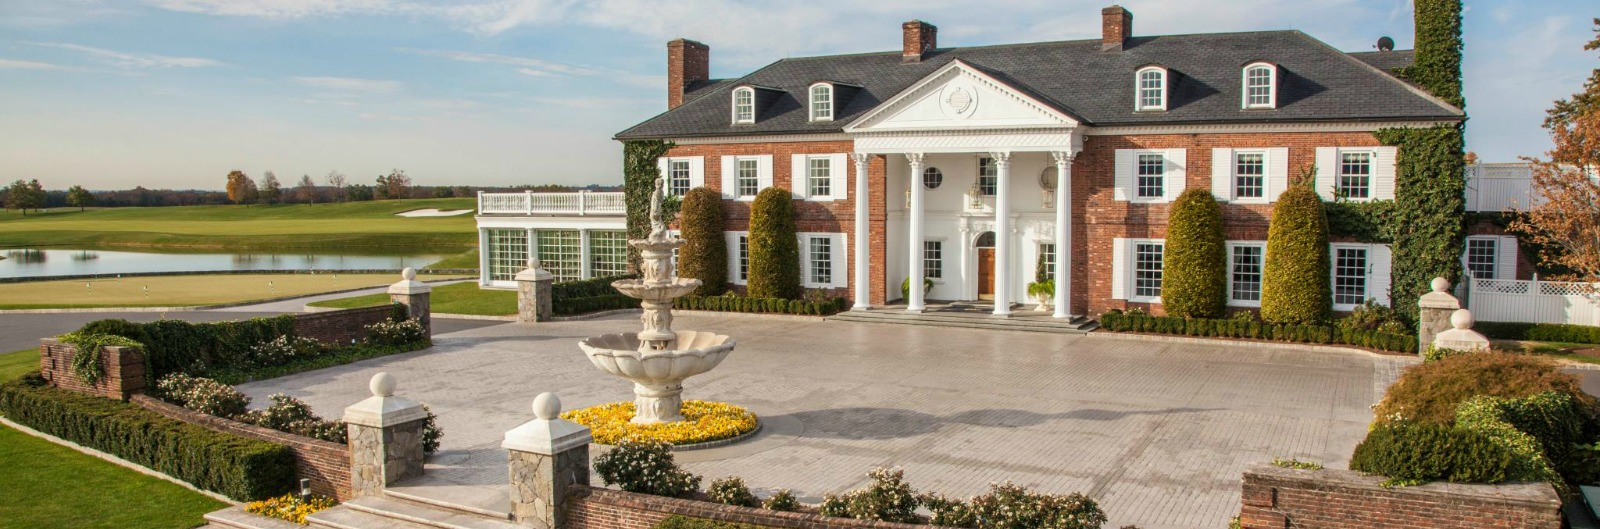 President trump s day golf club vacation the reeves